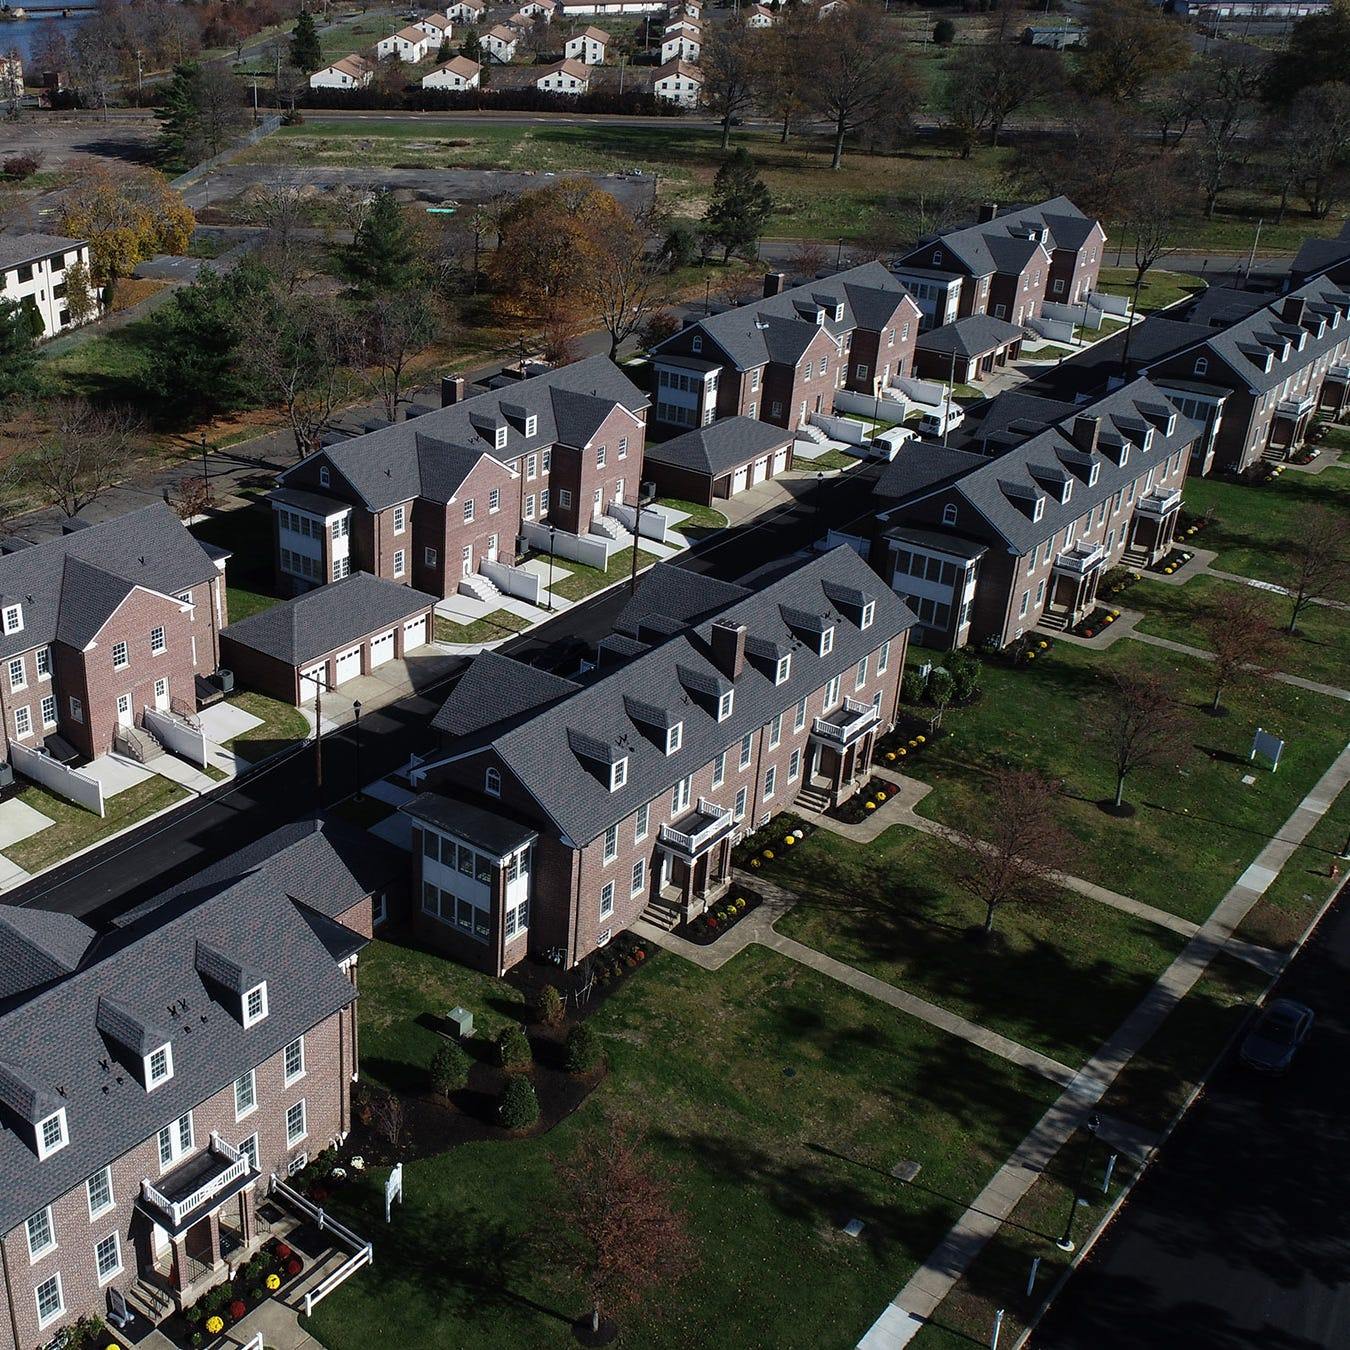 Fort Monmouth from above: Must-see drone photos of redevelopment, landmarks